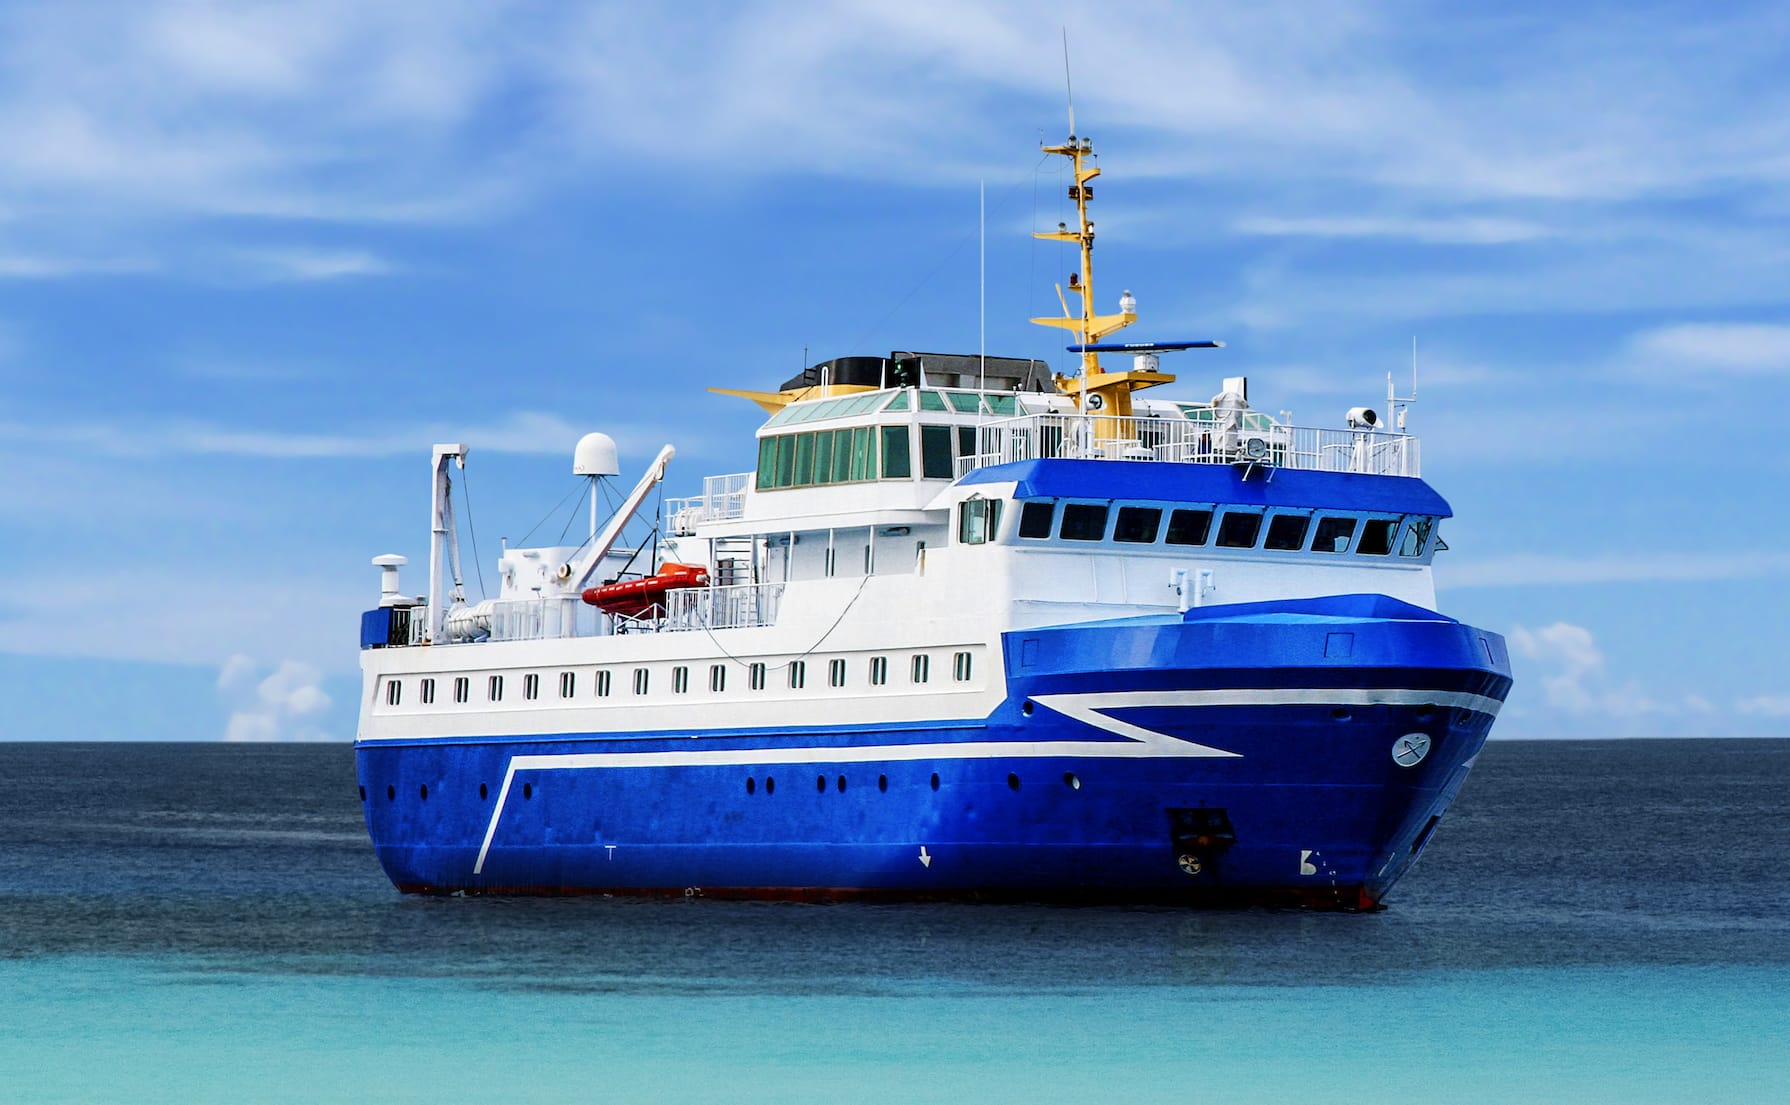 Africa cruise 2017 cape town to maputo jewels of southern africa chalo africa - Cape town to port elizabeth itinerary ...